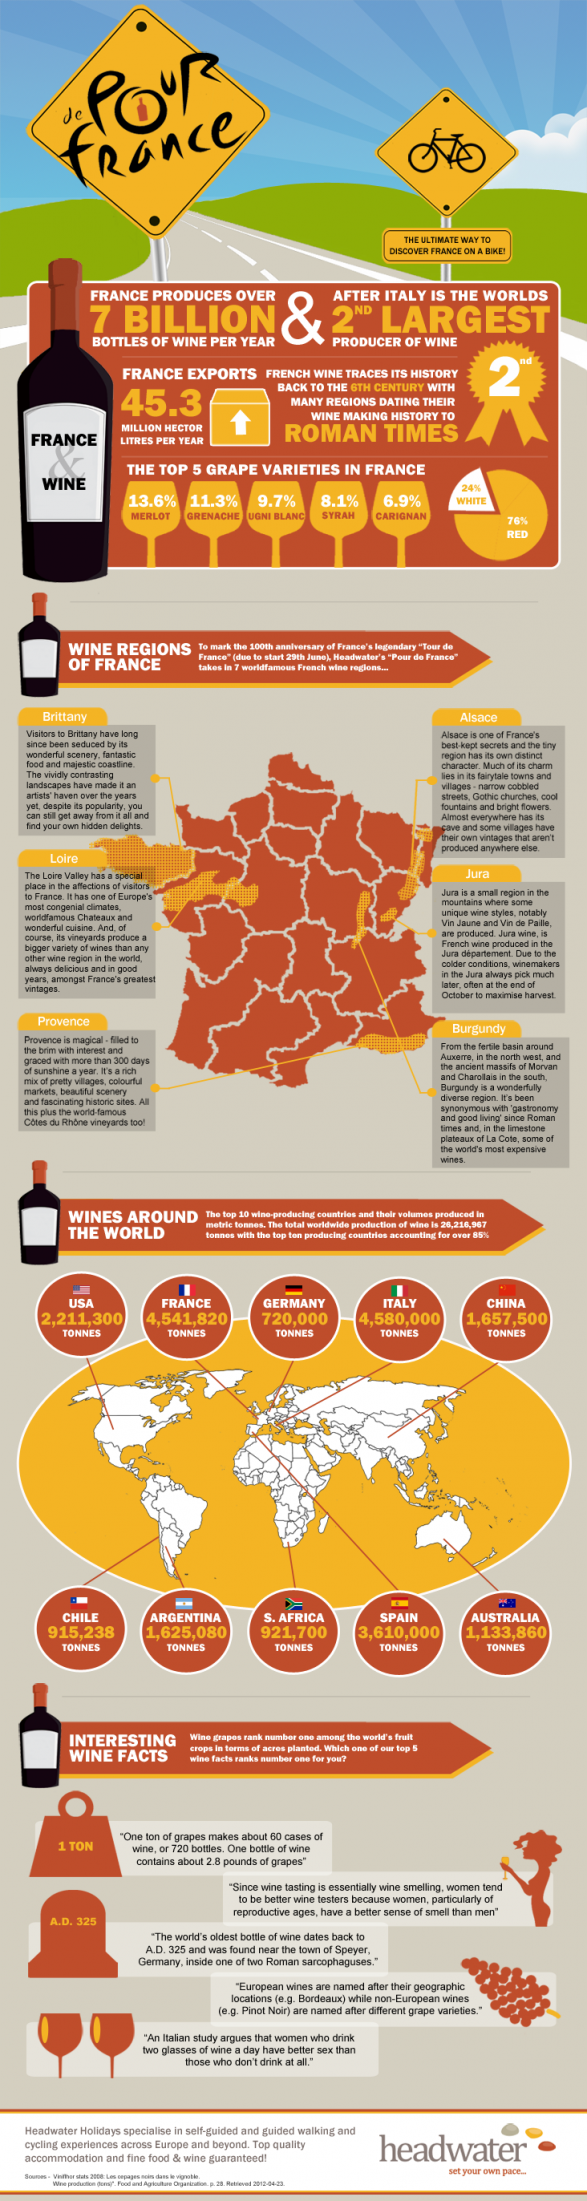 Pour De France - Some Corking Facts About French Wine